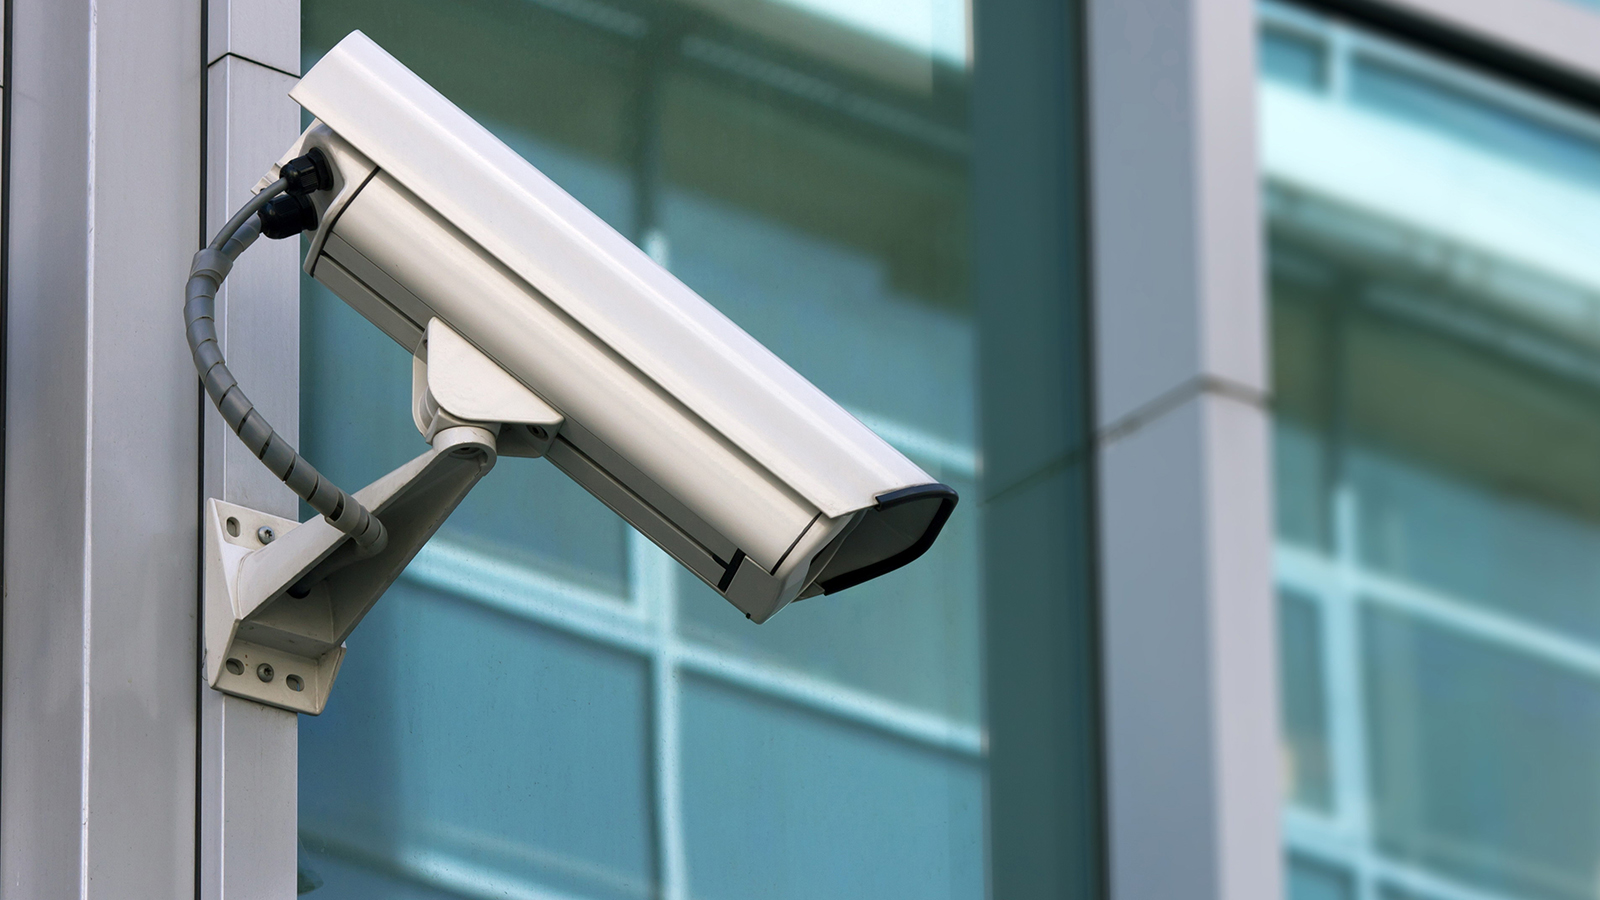 CCTV Security Systems Abu Dhabi